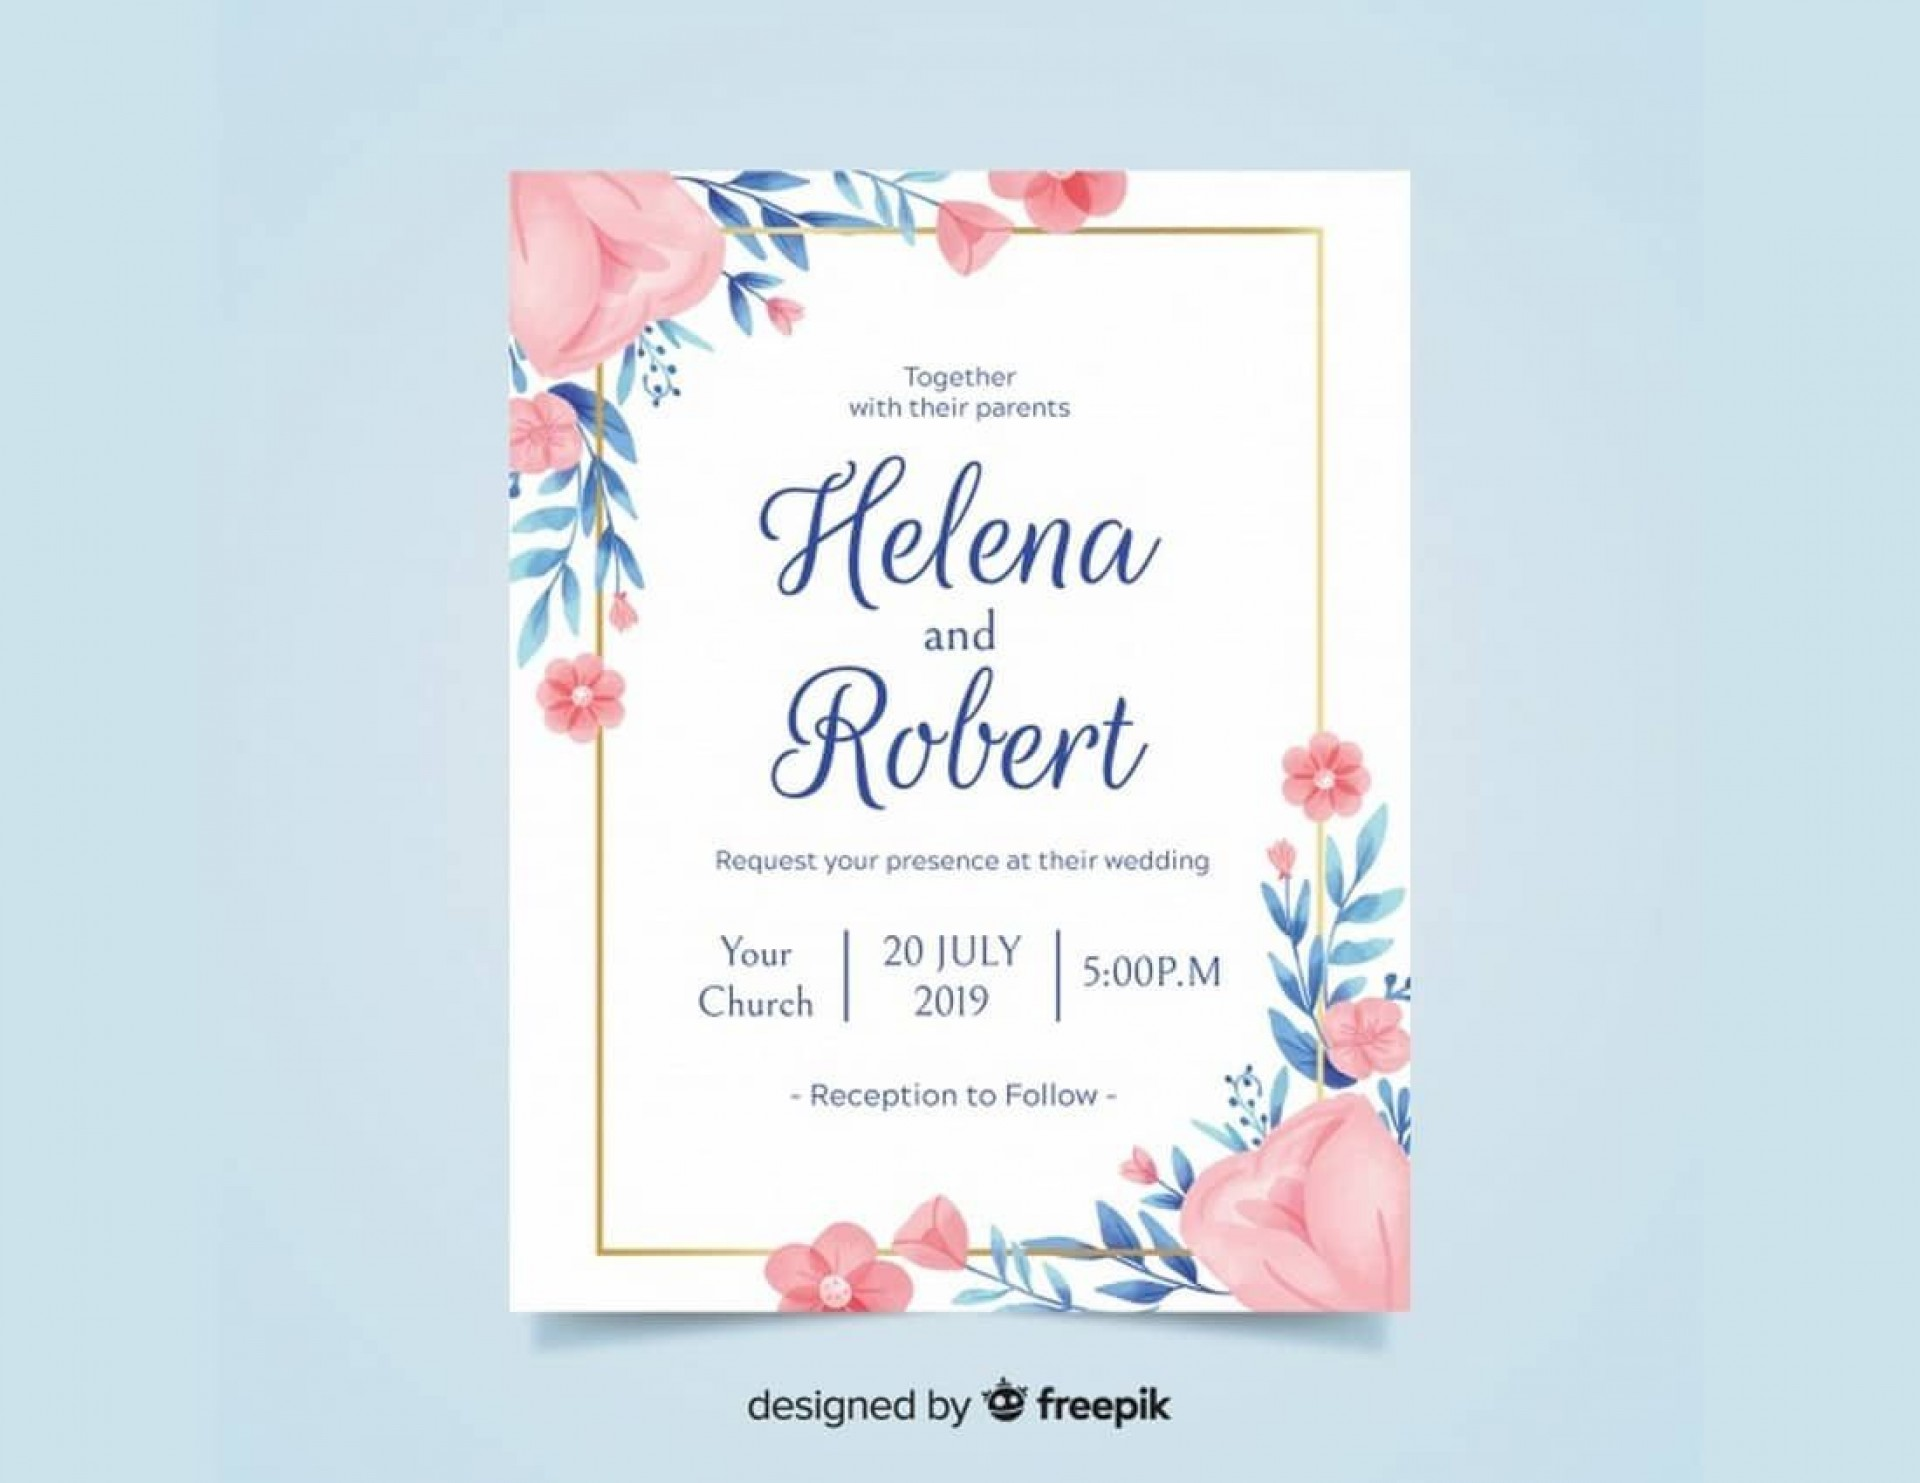 007 Amazing Free Busines Invitation Template For Word Image 1920